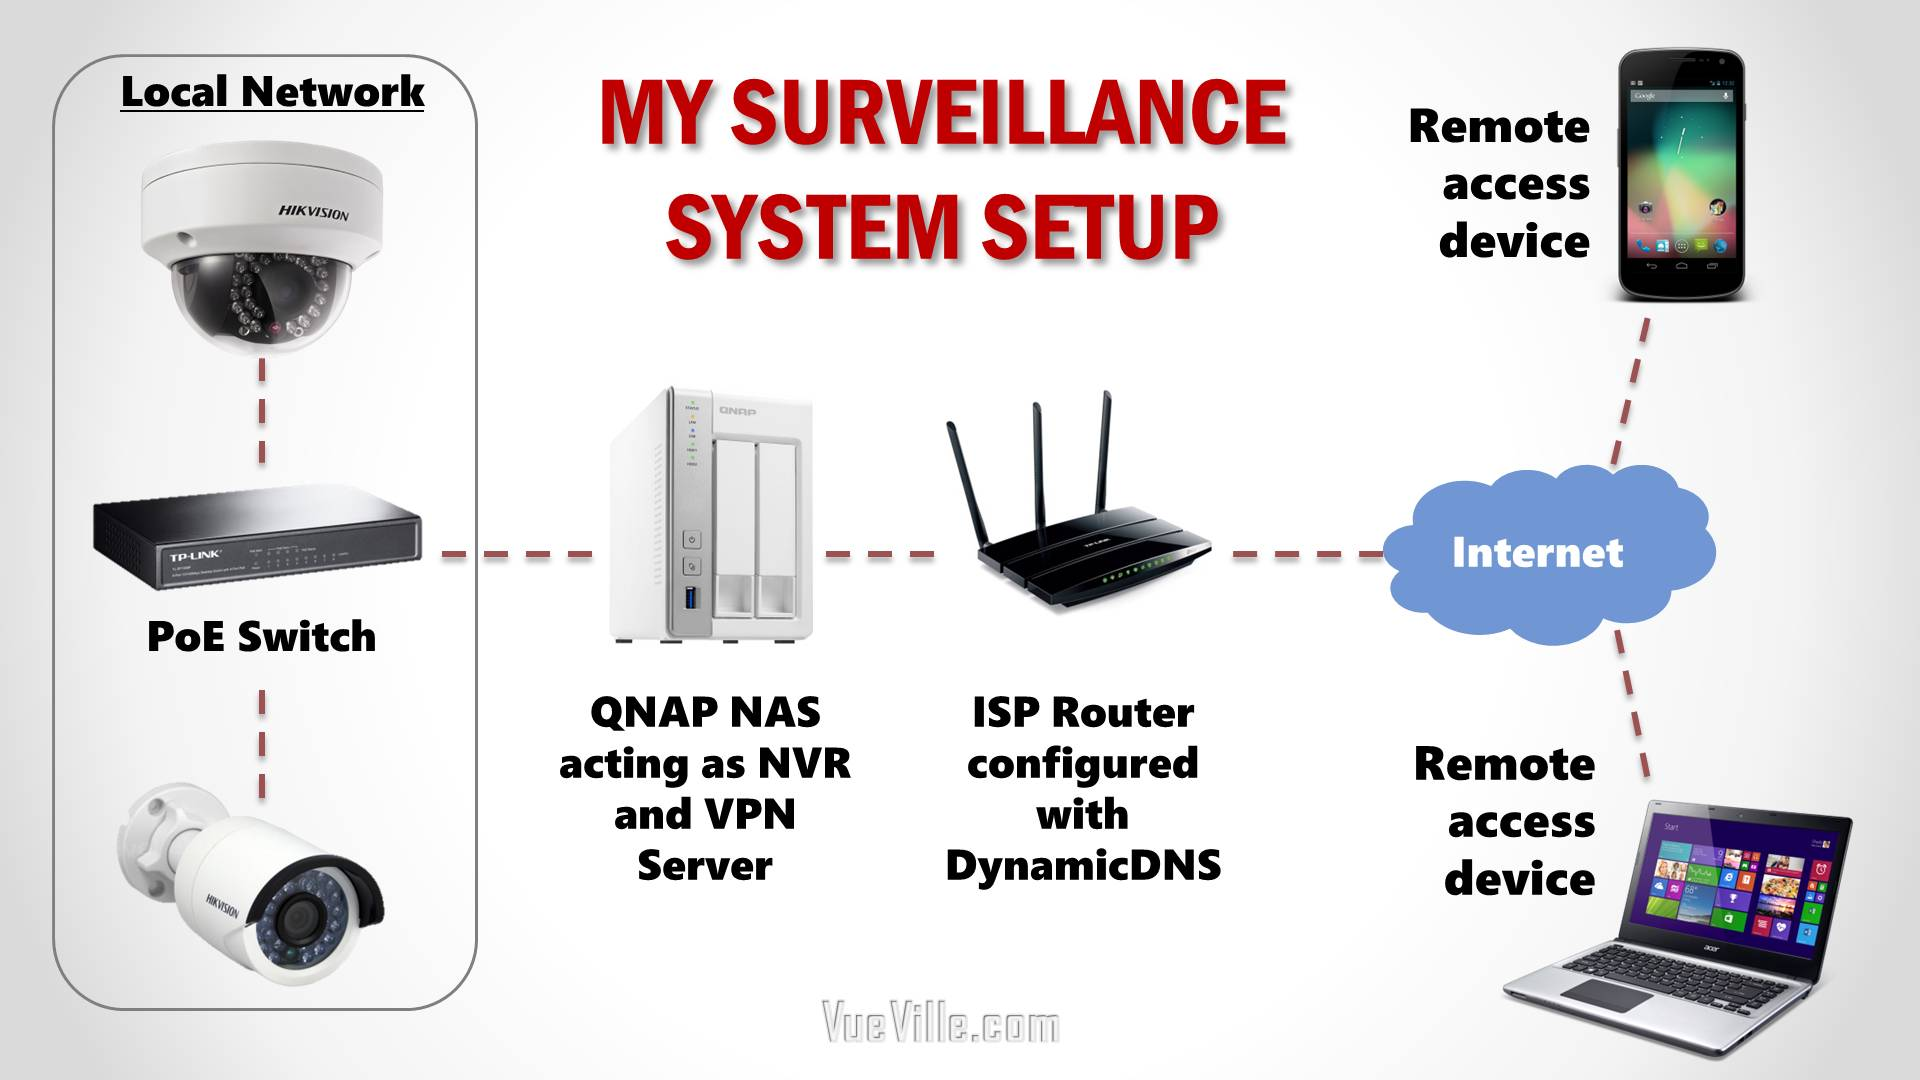 Wonderful DIY Home Security System Network Topology Logical VueVille.com